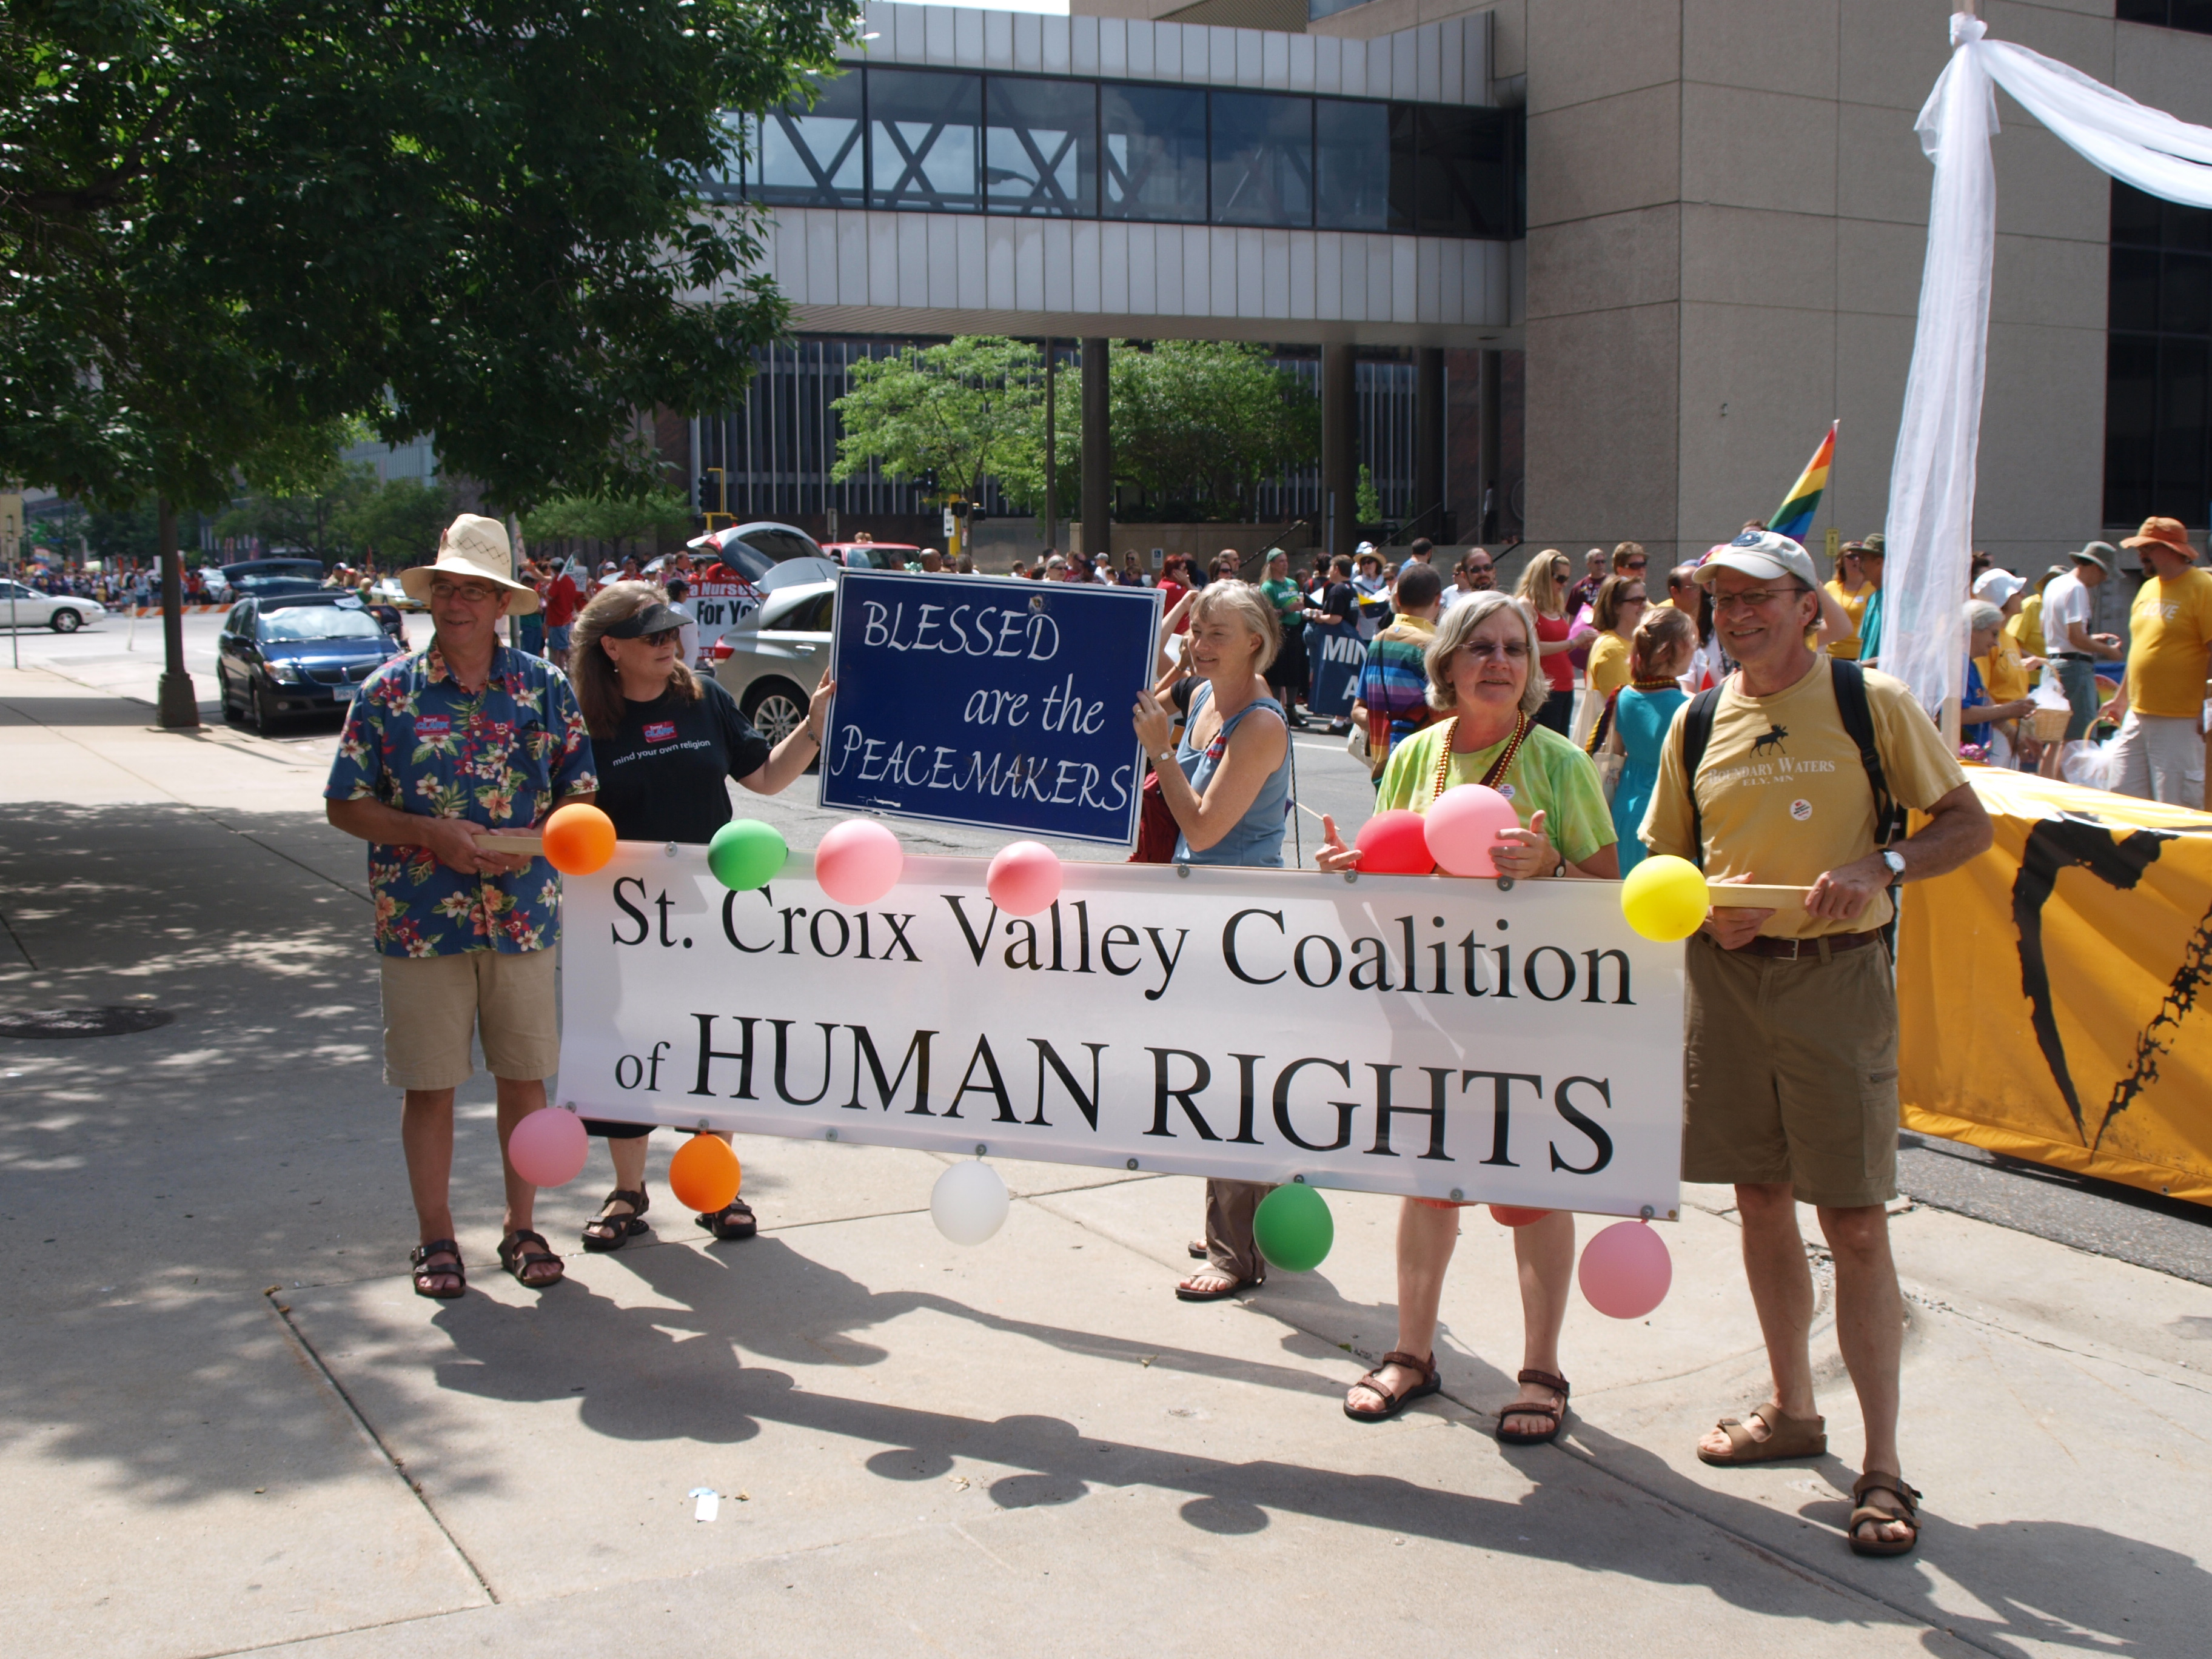 St. Croix Valley Coalition of Human Rights.